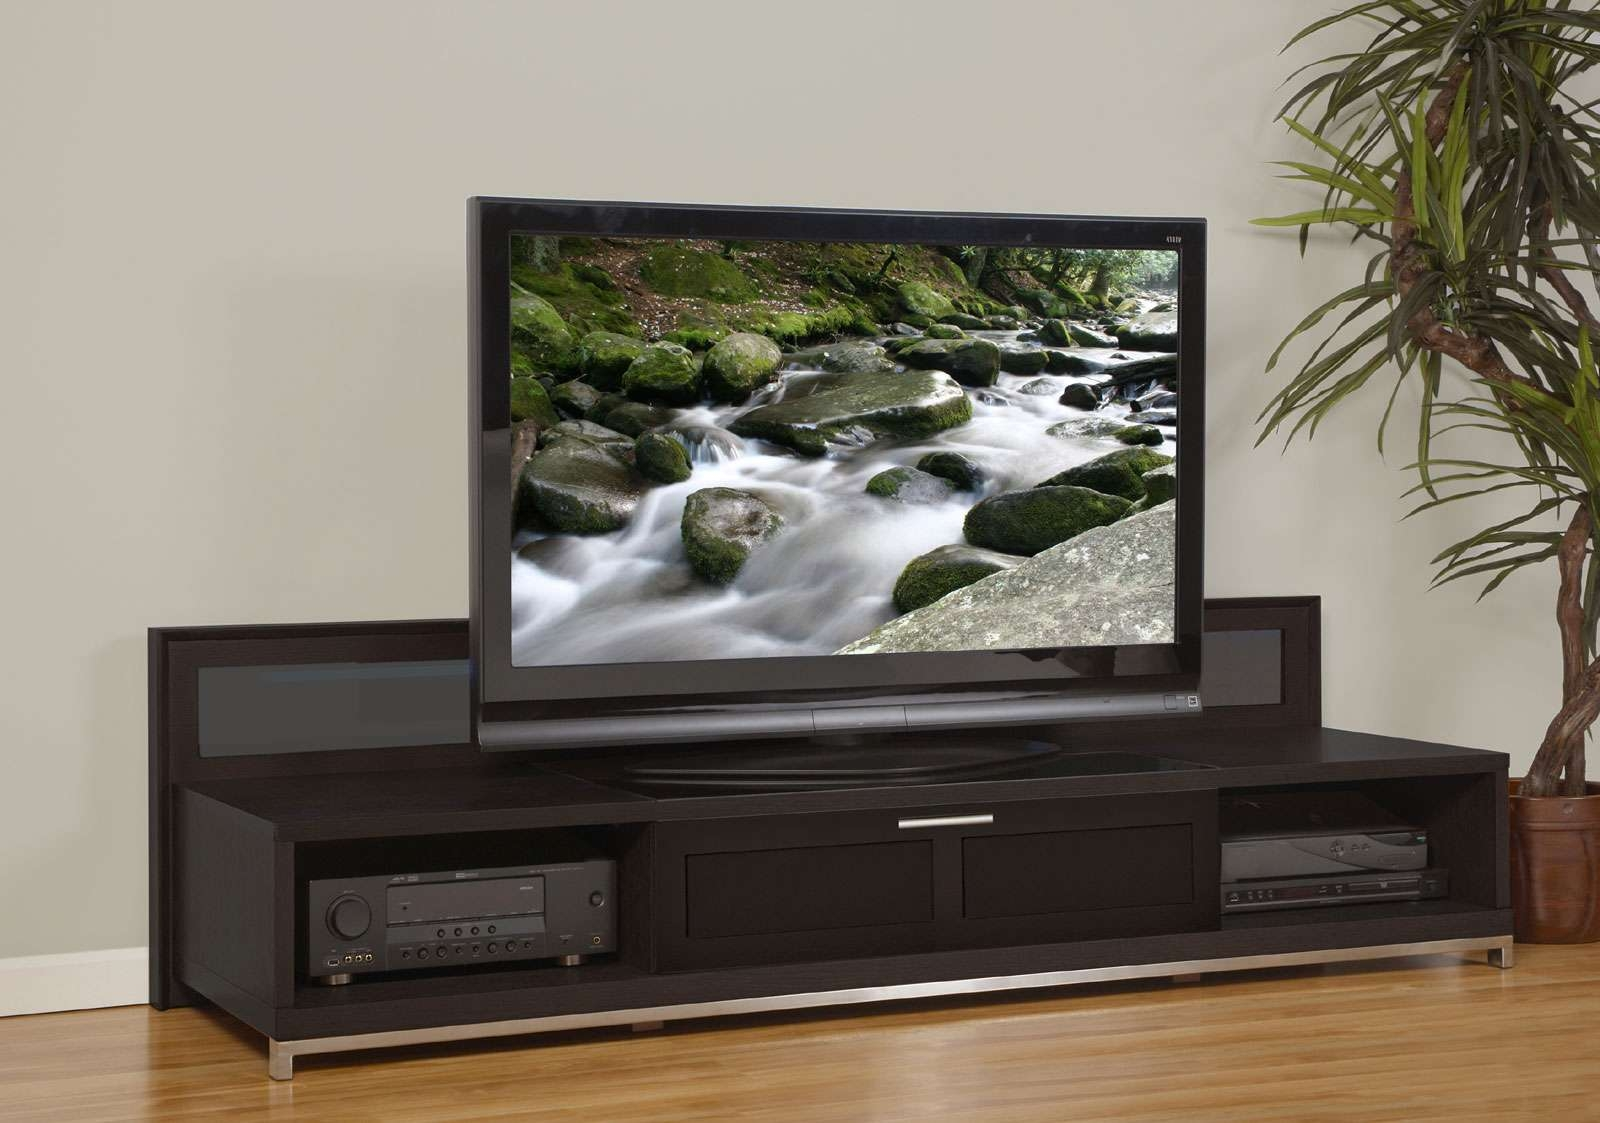 Dark Brown Stained Mahogany Wood Low Tv Stand With Cast Iron Intended For Low Corner Tv Stands (View 6 of 15)